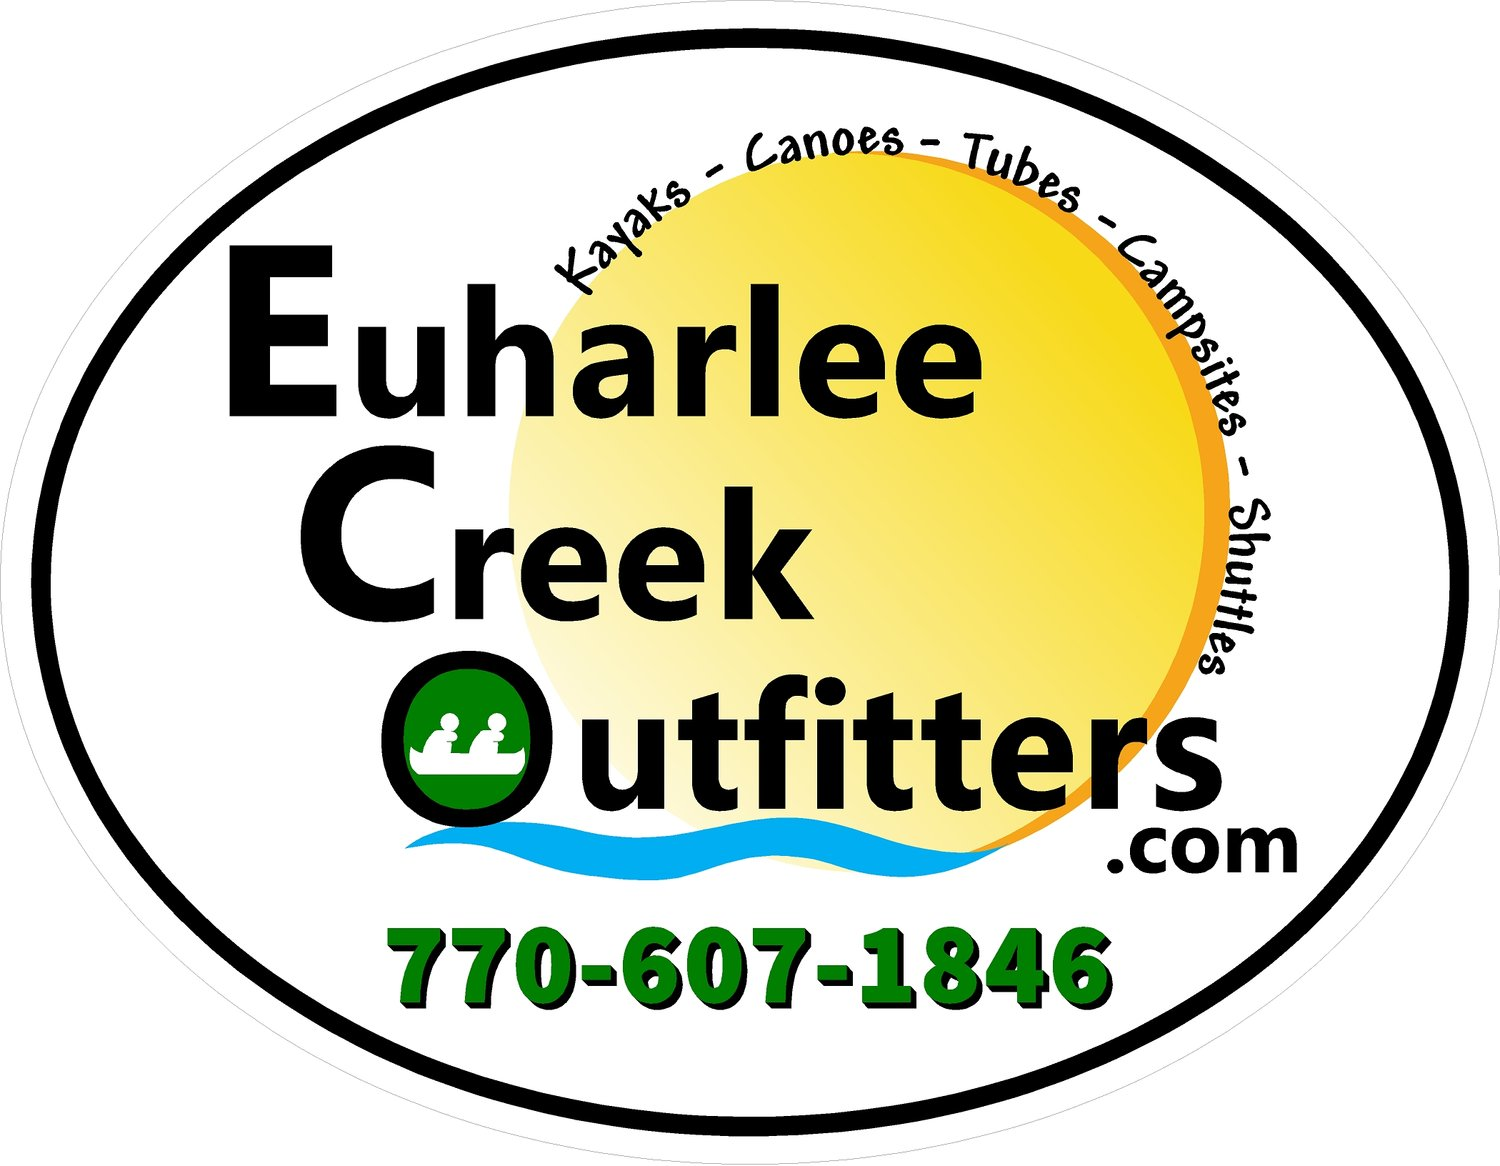 Euharlee Creek Outfitters